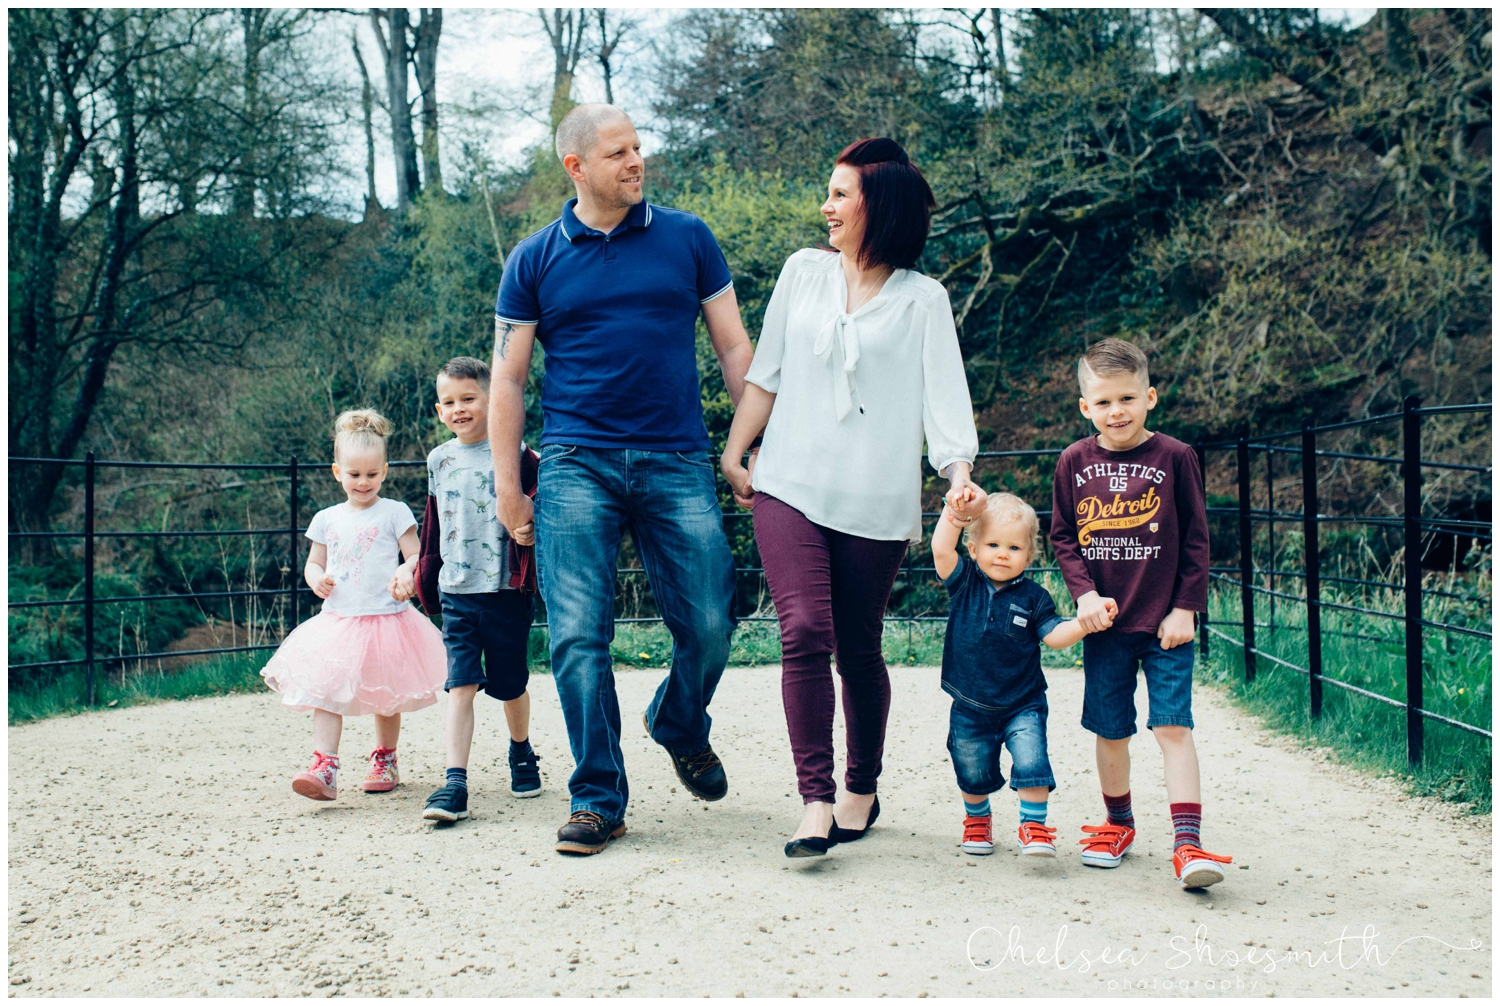 (7 of 72) Rigby Family Portrait Photography Quarry Bank Mill Styal Chelsea Shoesmith photography